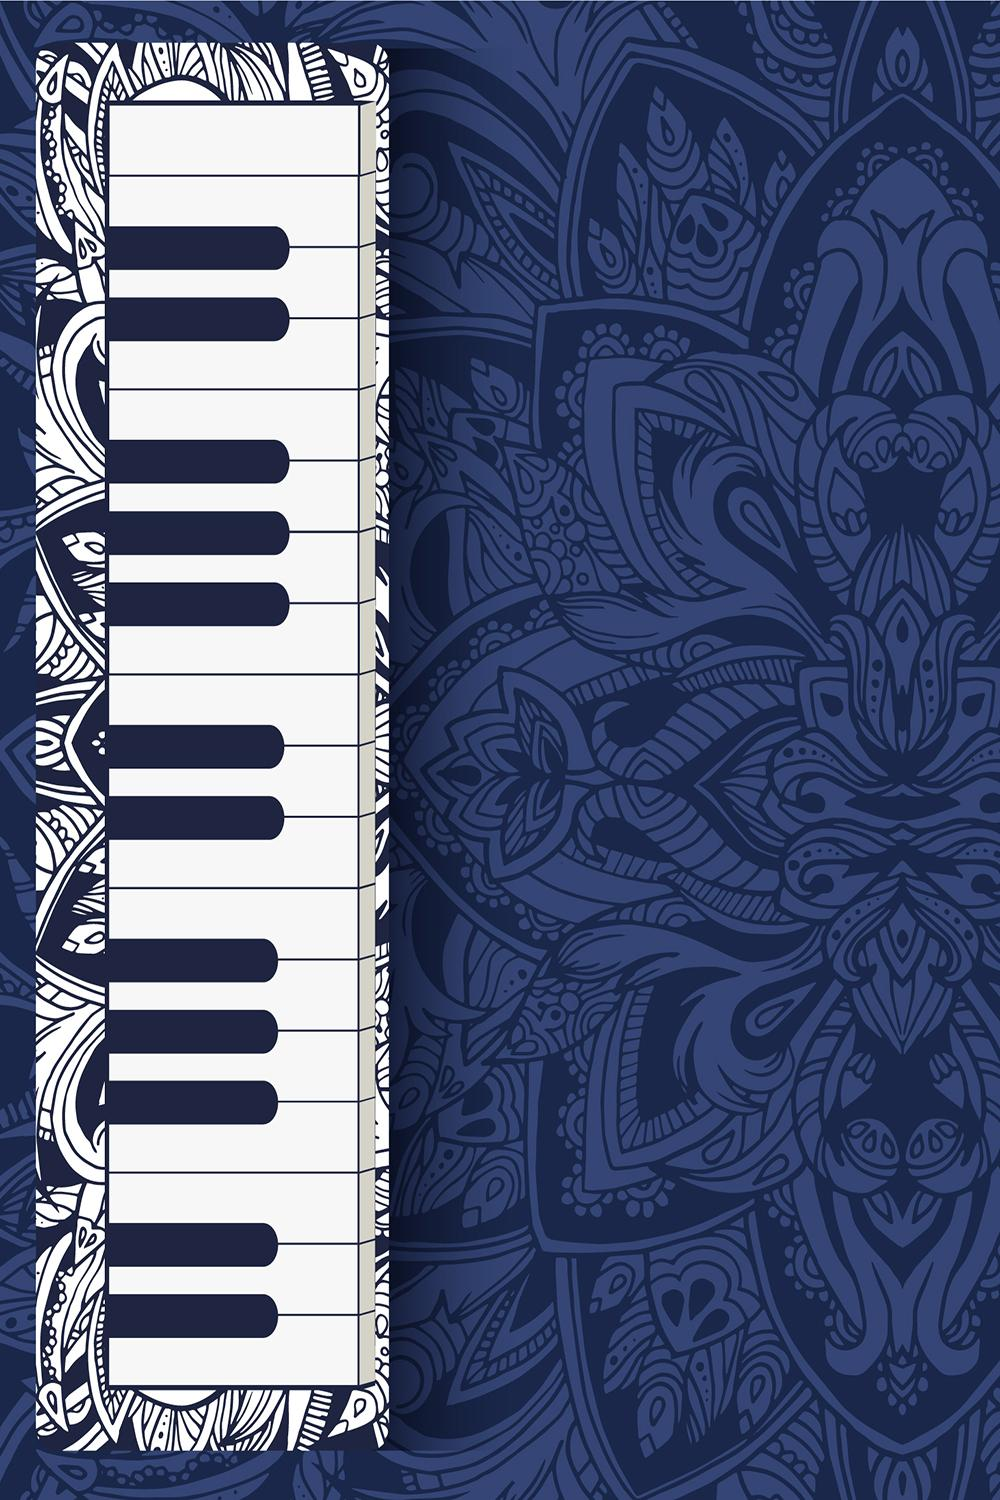 Buy Piano Wallpaper Online in India at Best Price – Circle One